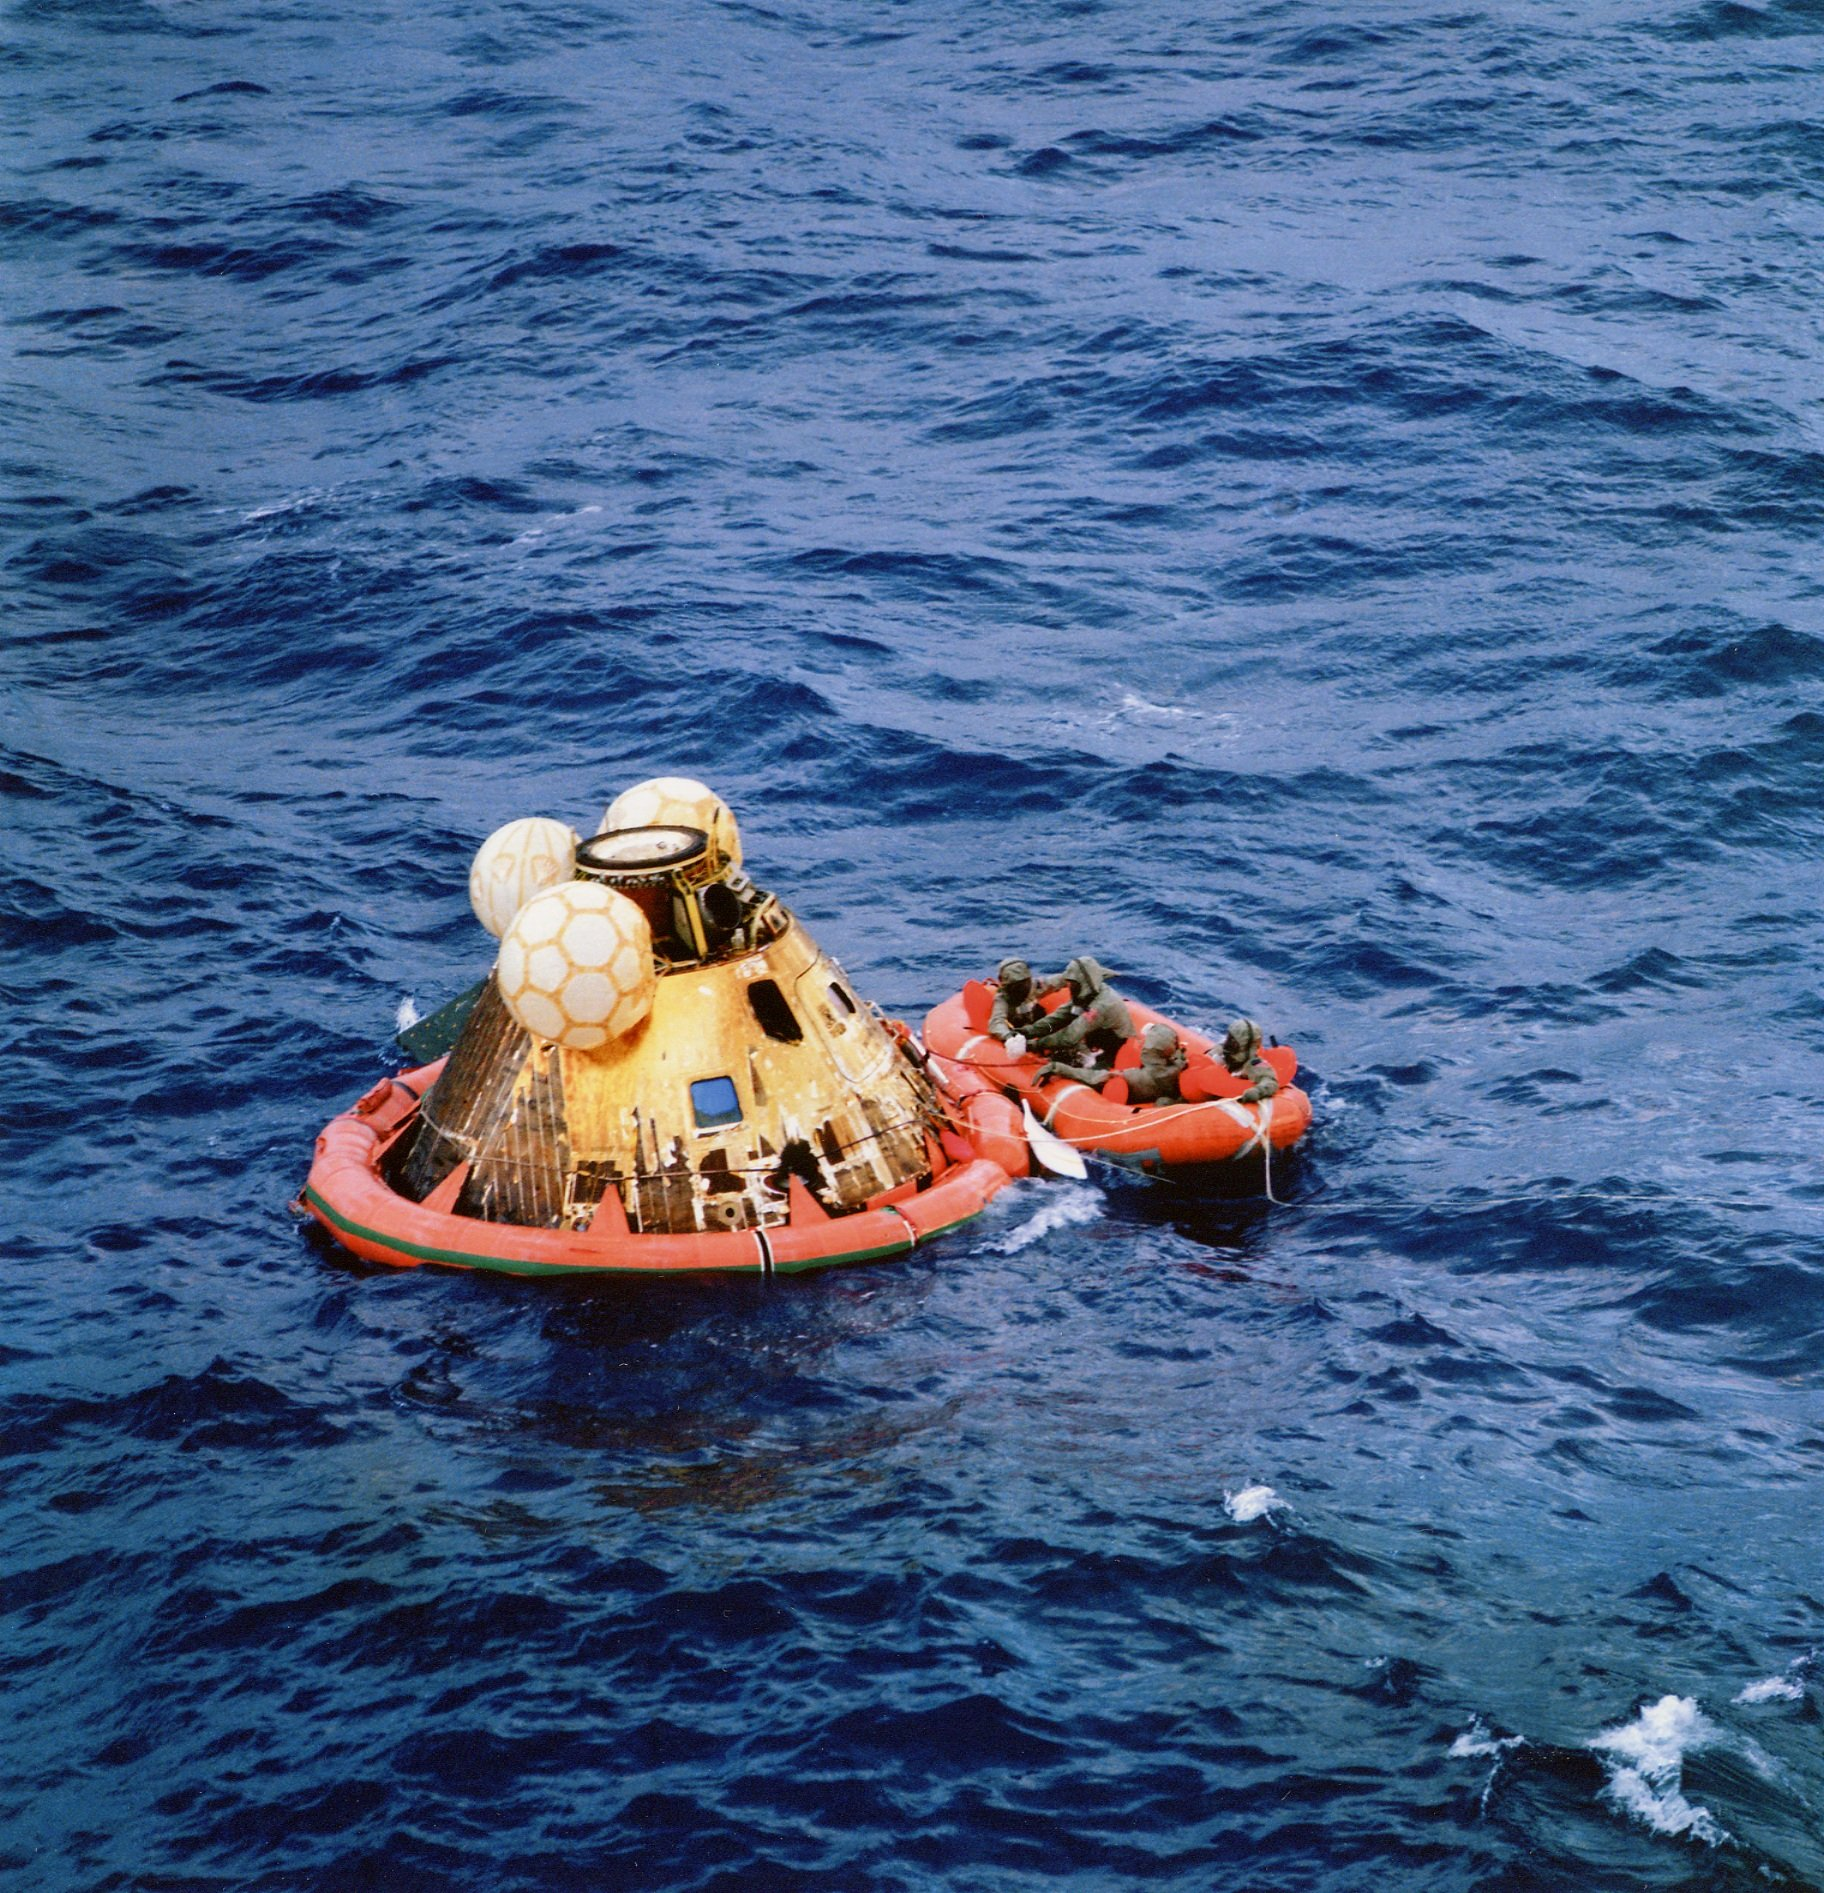 The Apollo 11 crew await pickup by the USS Hornet in the Pacific Ocean    July 24th, 1969   Image credit: NASA